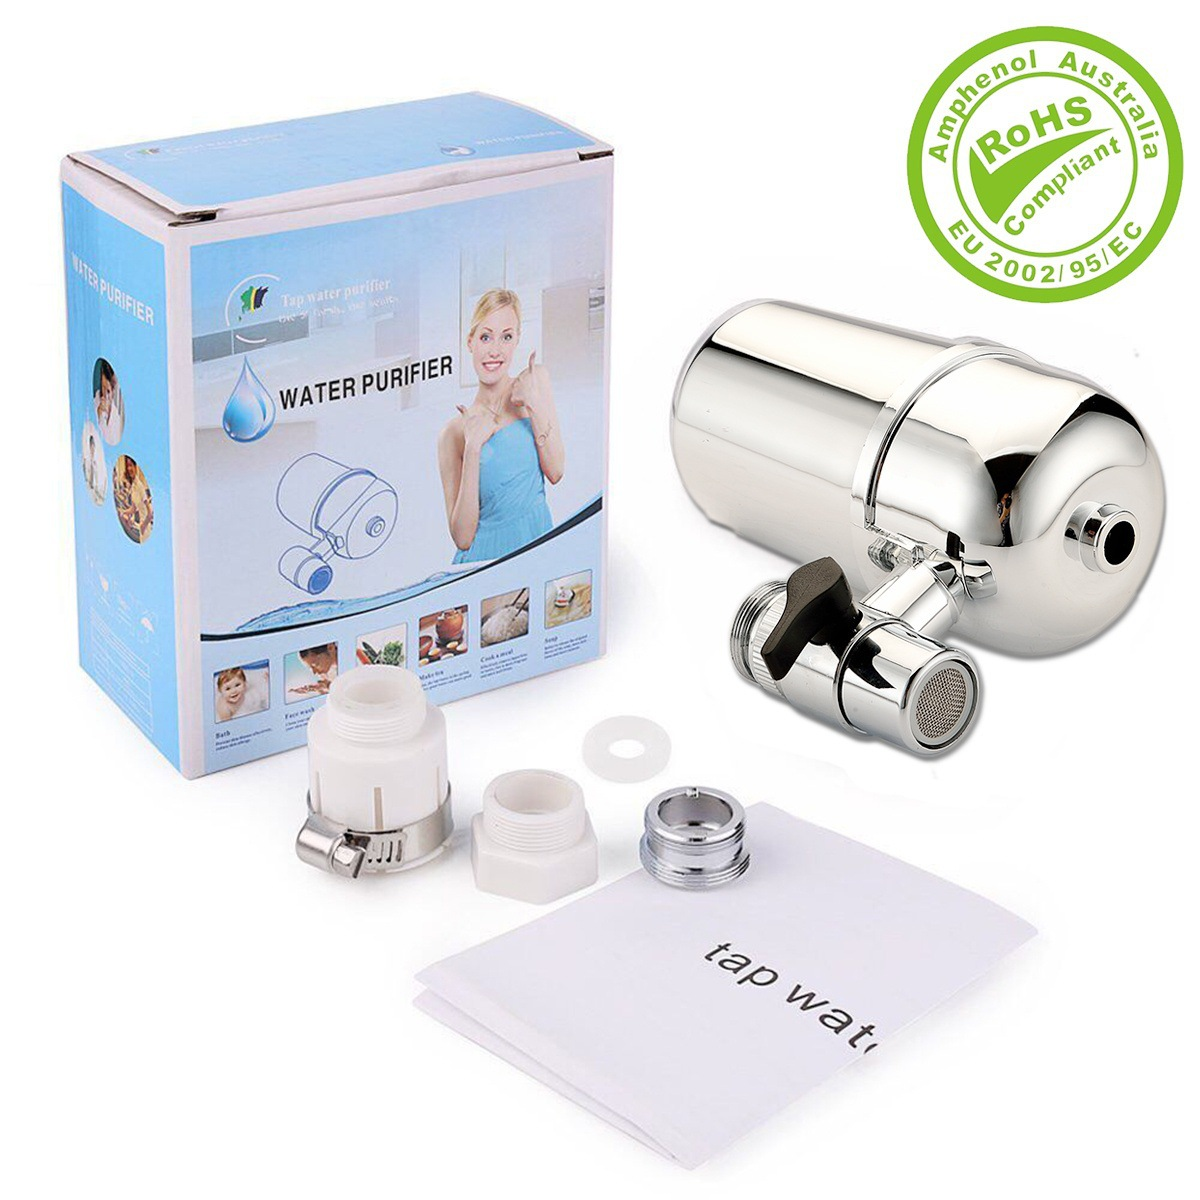 Tap Water Purifier Kitchen Faucet Washable Ceramic Percolator Health Rust Bacteria Removal Replacement Filter Water Softener